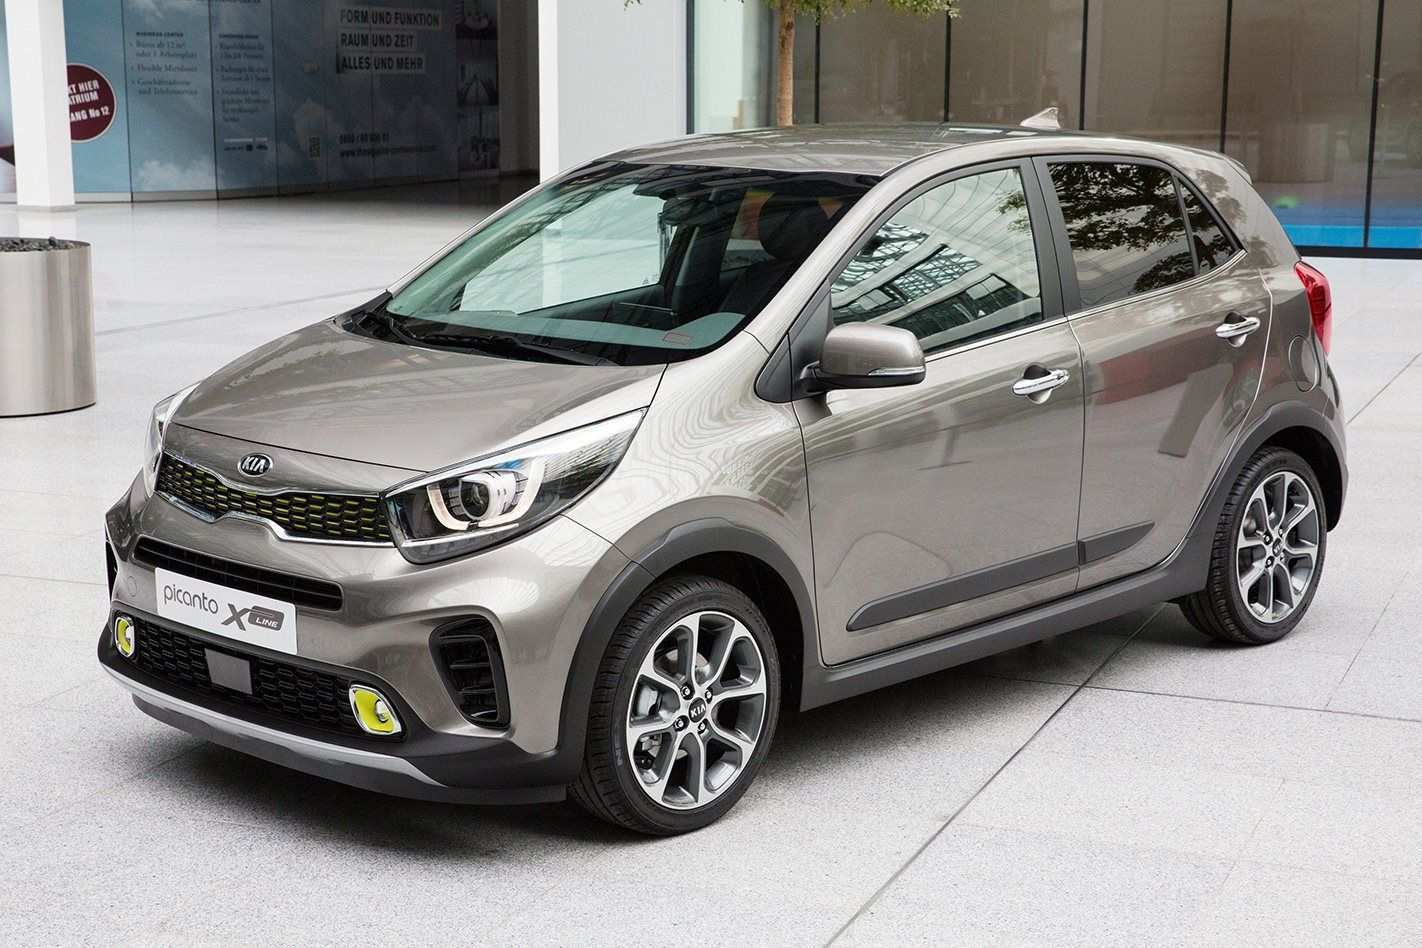 84 The Best Kia Picanto 2019 Xline Style